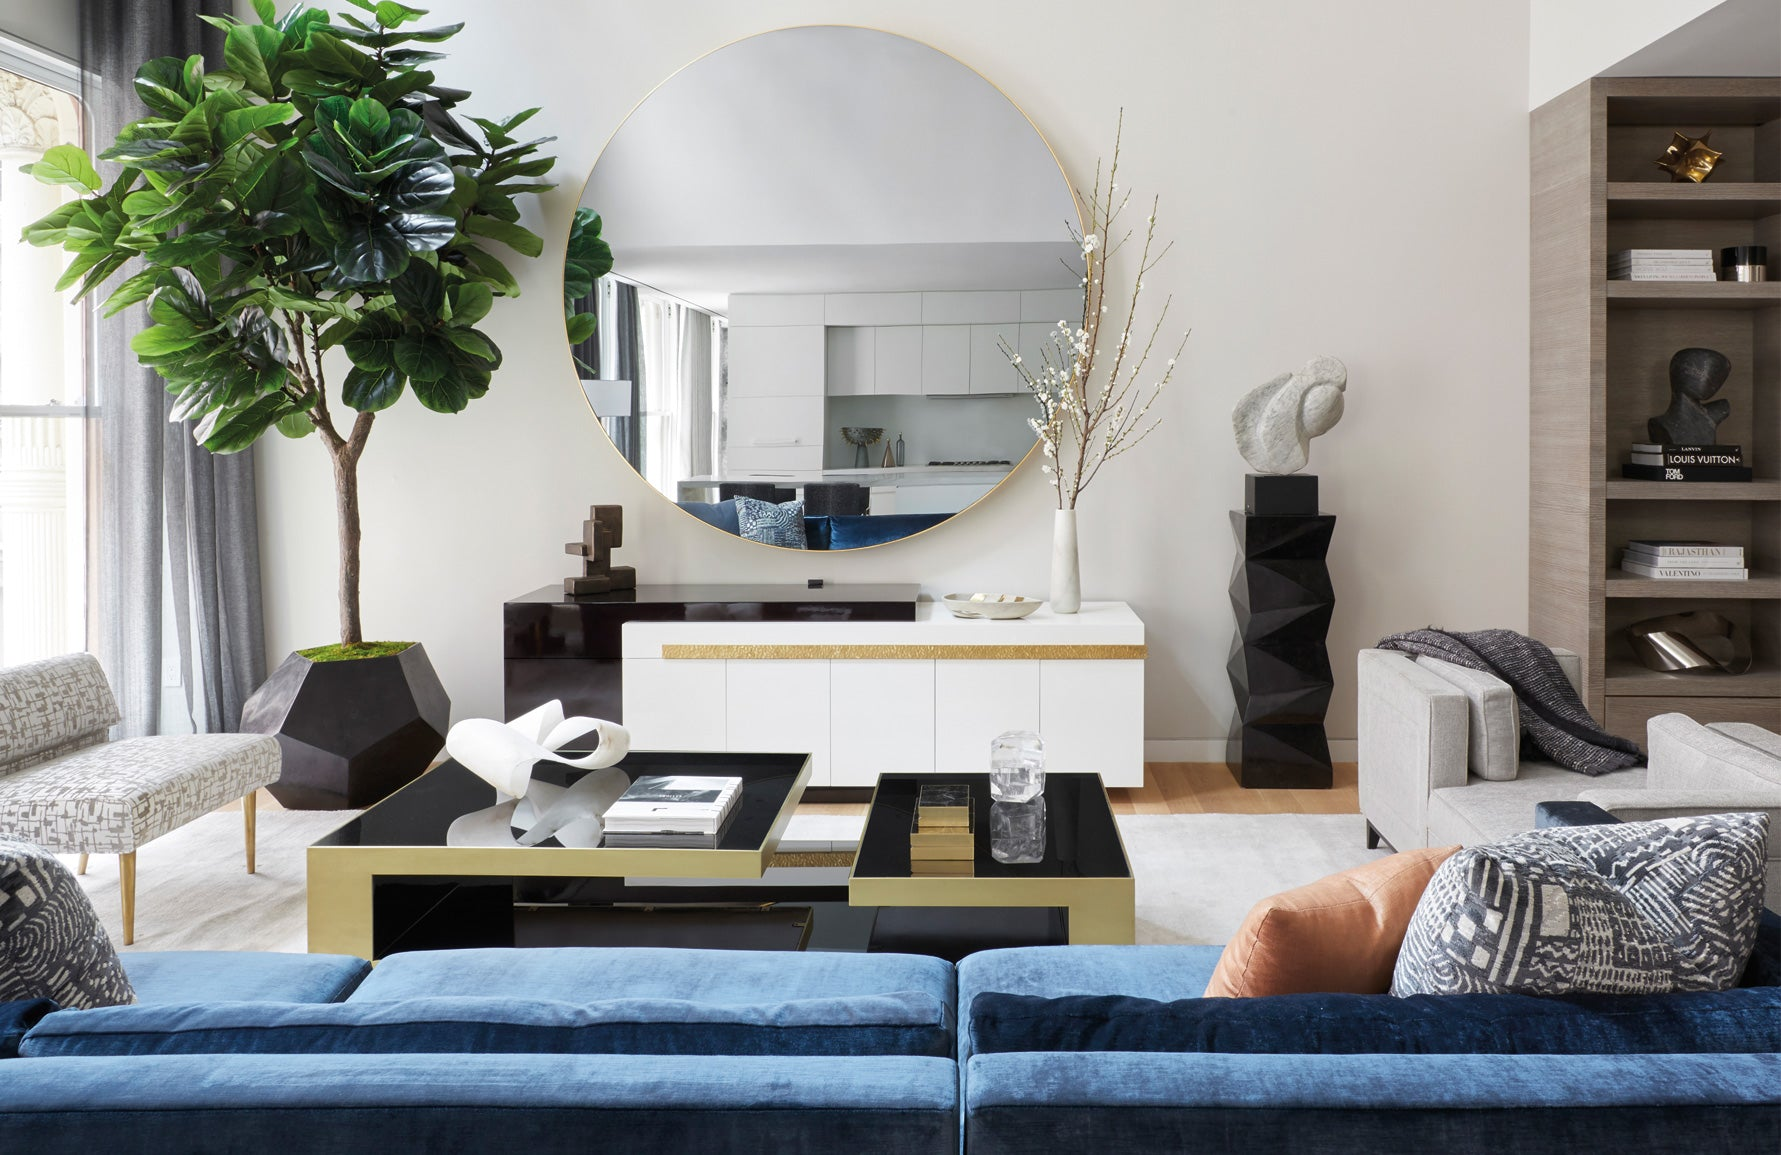 How To Use Oversized Decor In Your Space | Large Mirrors | Design by Carlyle Designs | Read more in the LuxDeco.com Style Guide